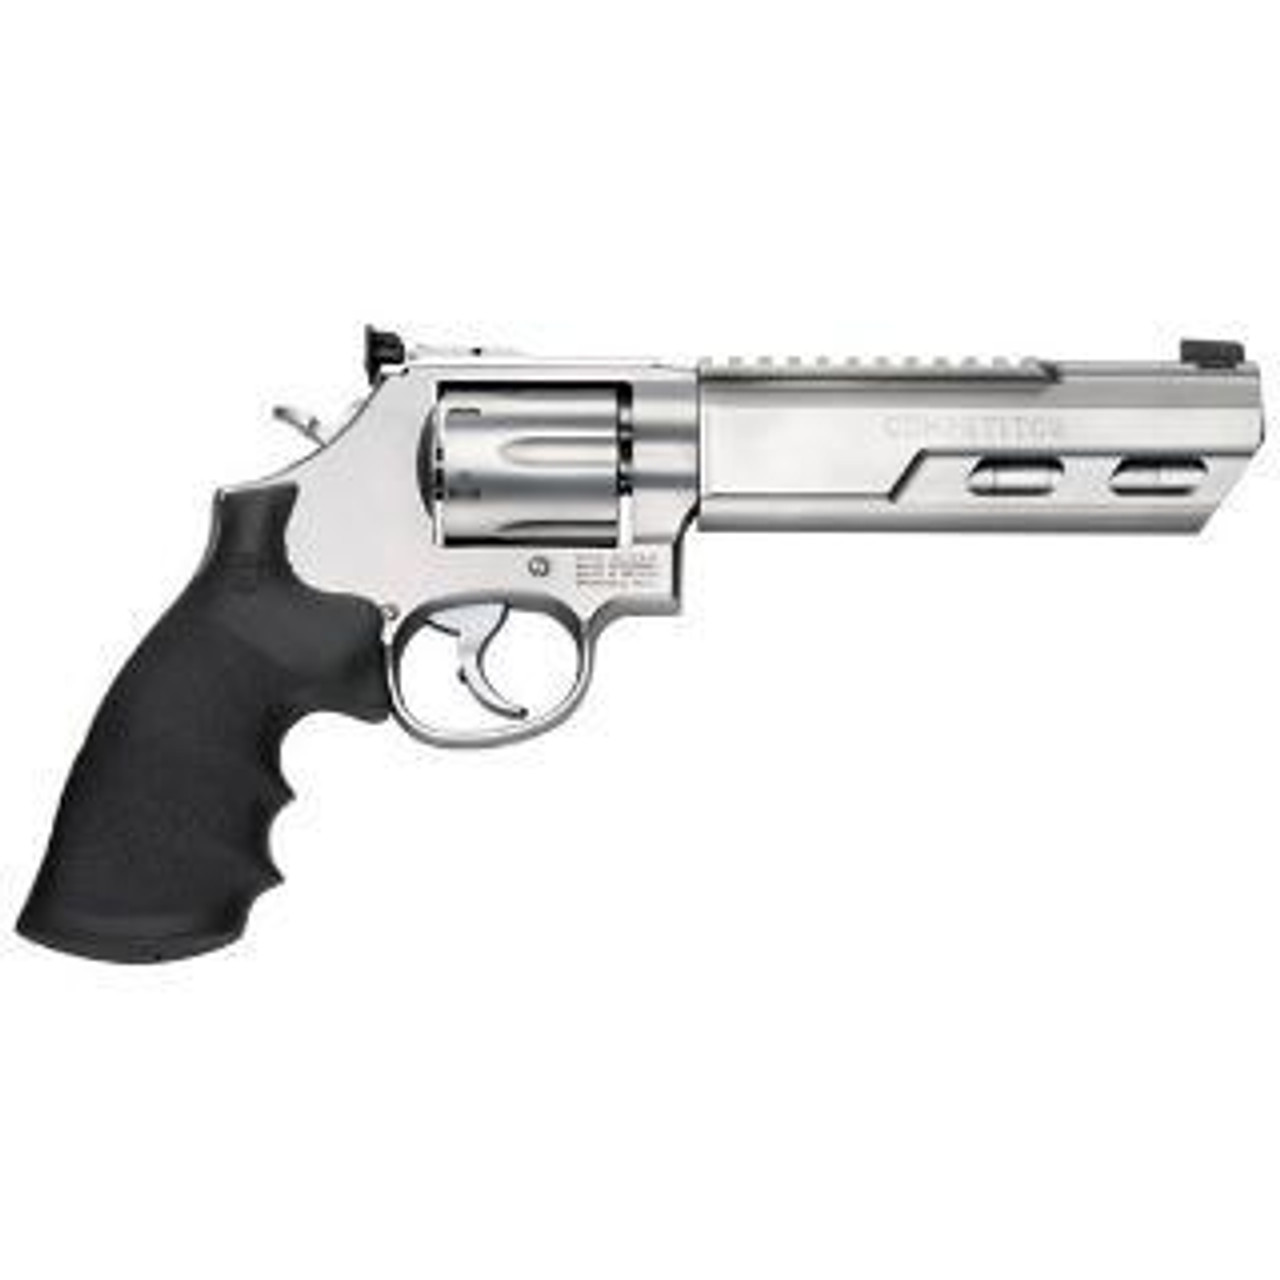 Smith & Wesson Model 686 Performance Center CALIFORNIA LEGAL - .357Mag